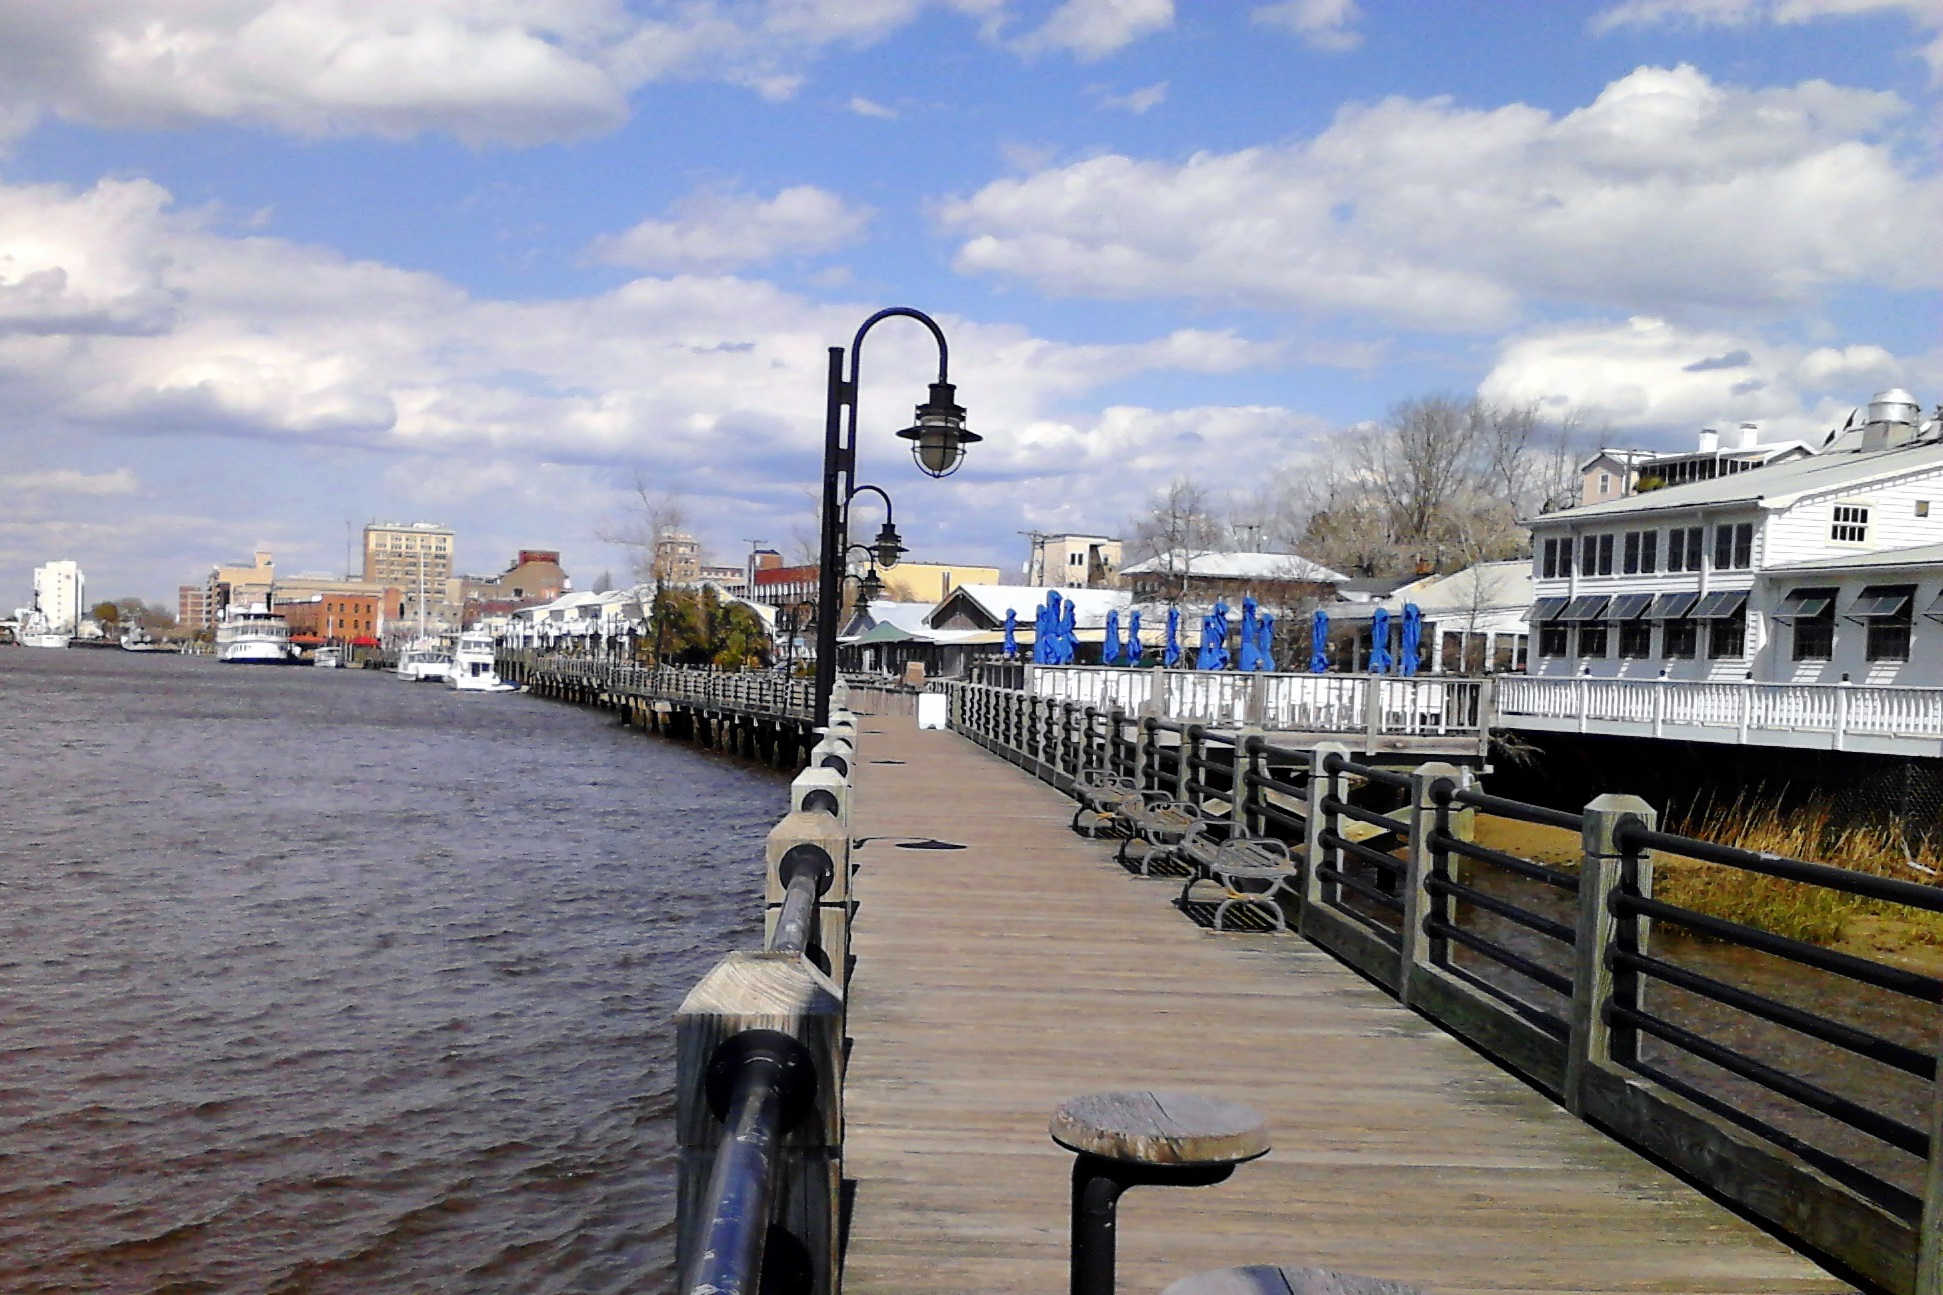 FileWilmington Riverwalk and downtownjpg Wikimedia Commons 1943x1295